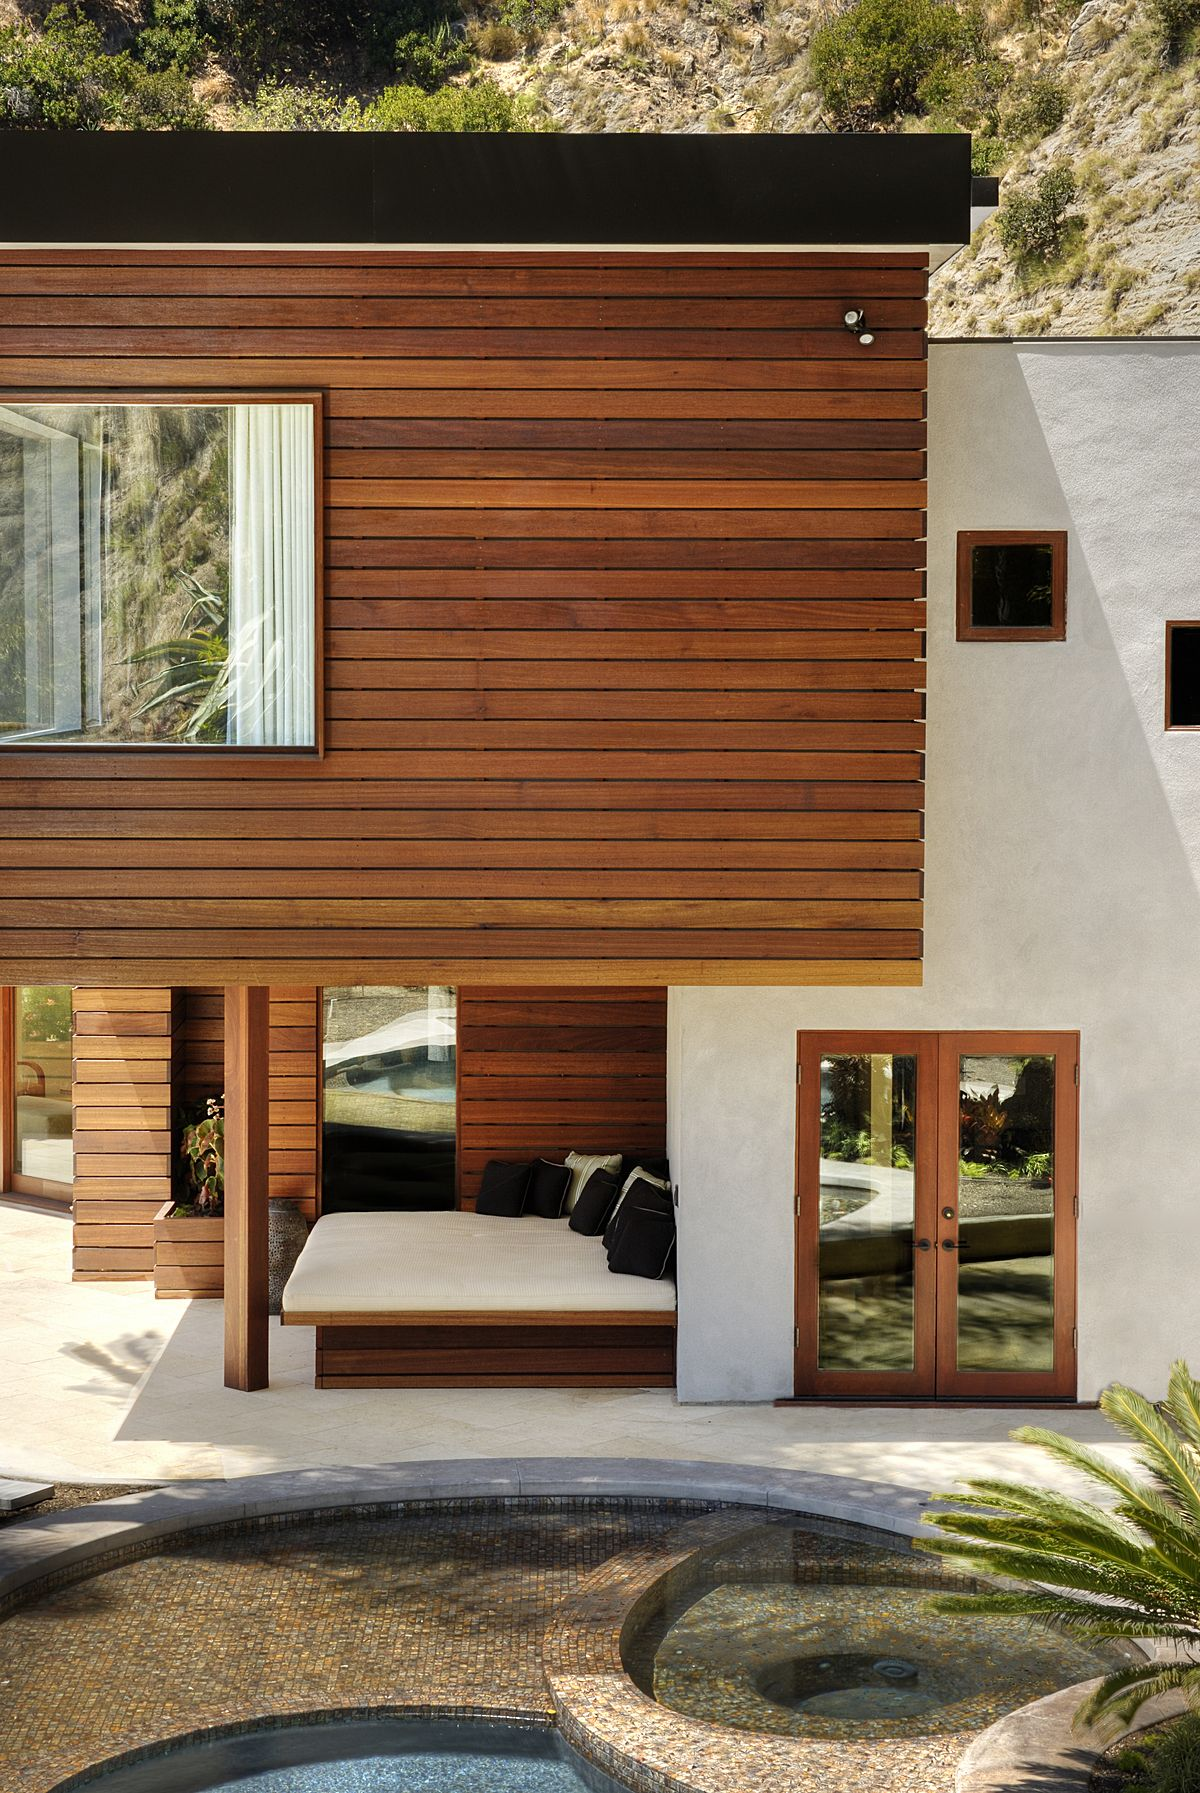 west hollywood residence modern architecture on modern house designs siding that look amazing id=65655